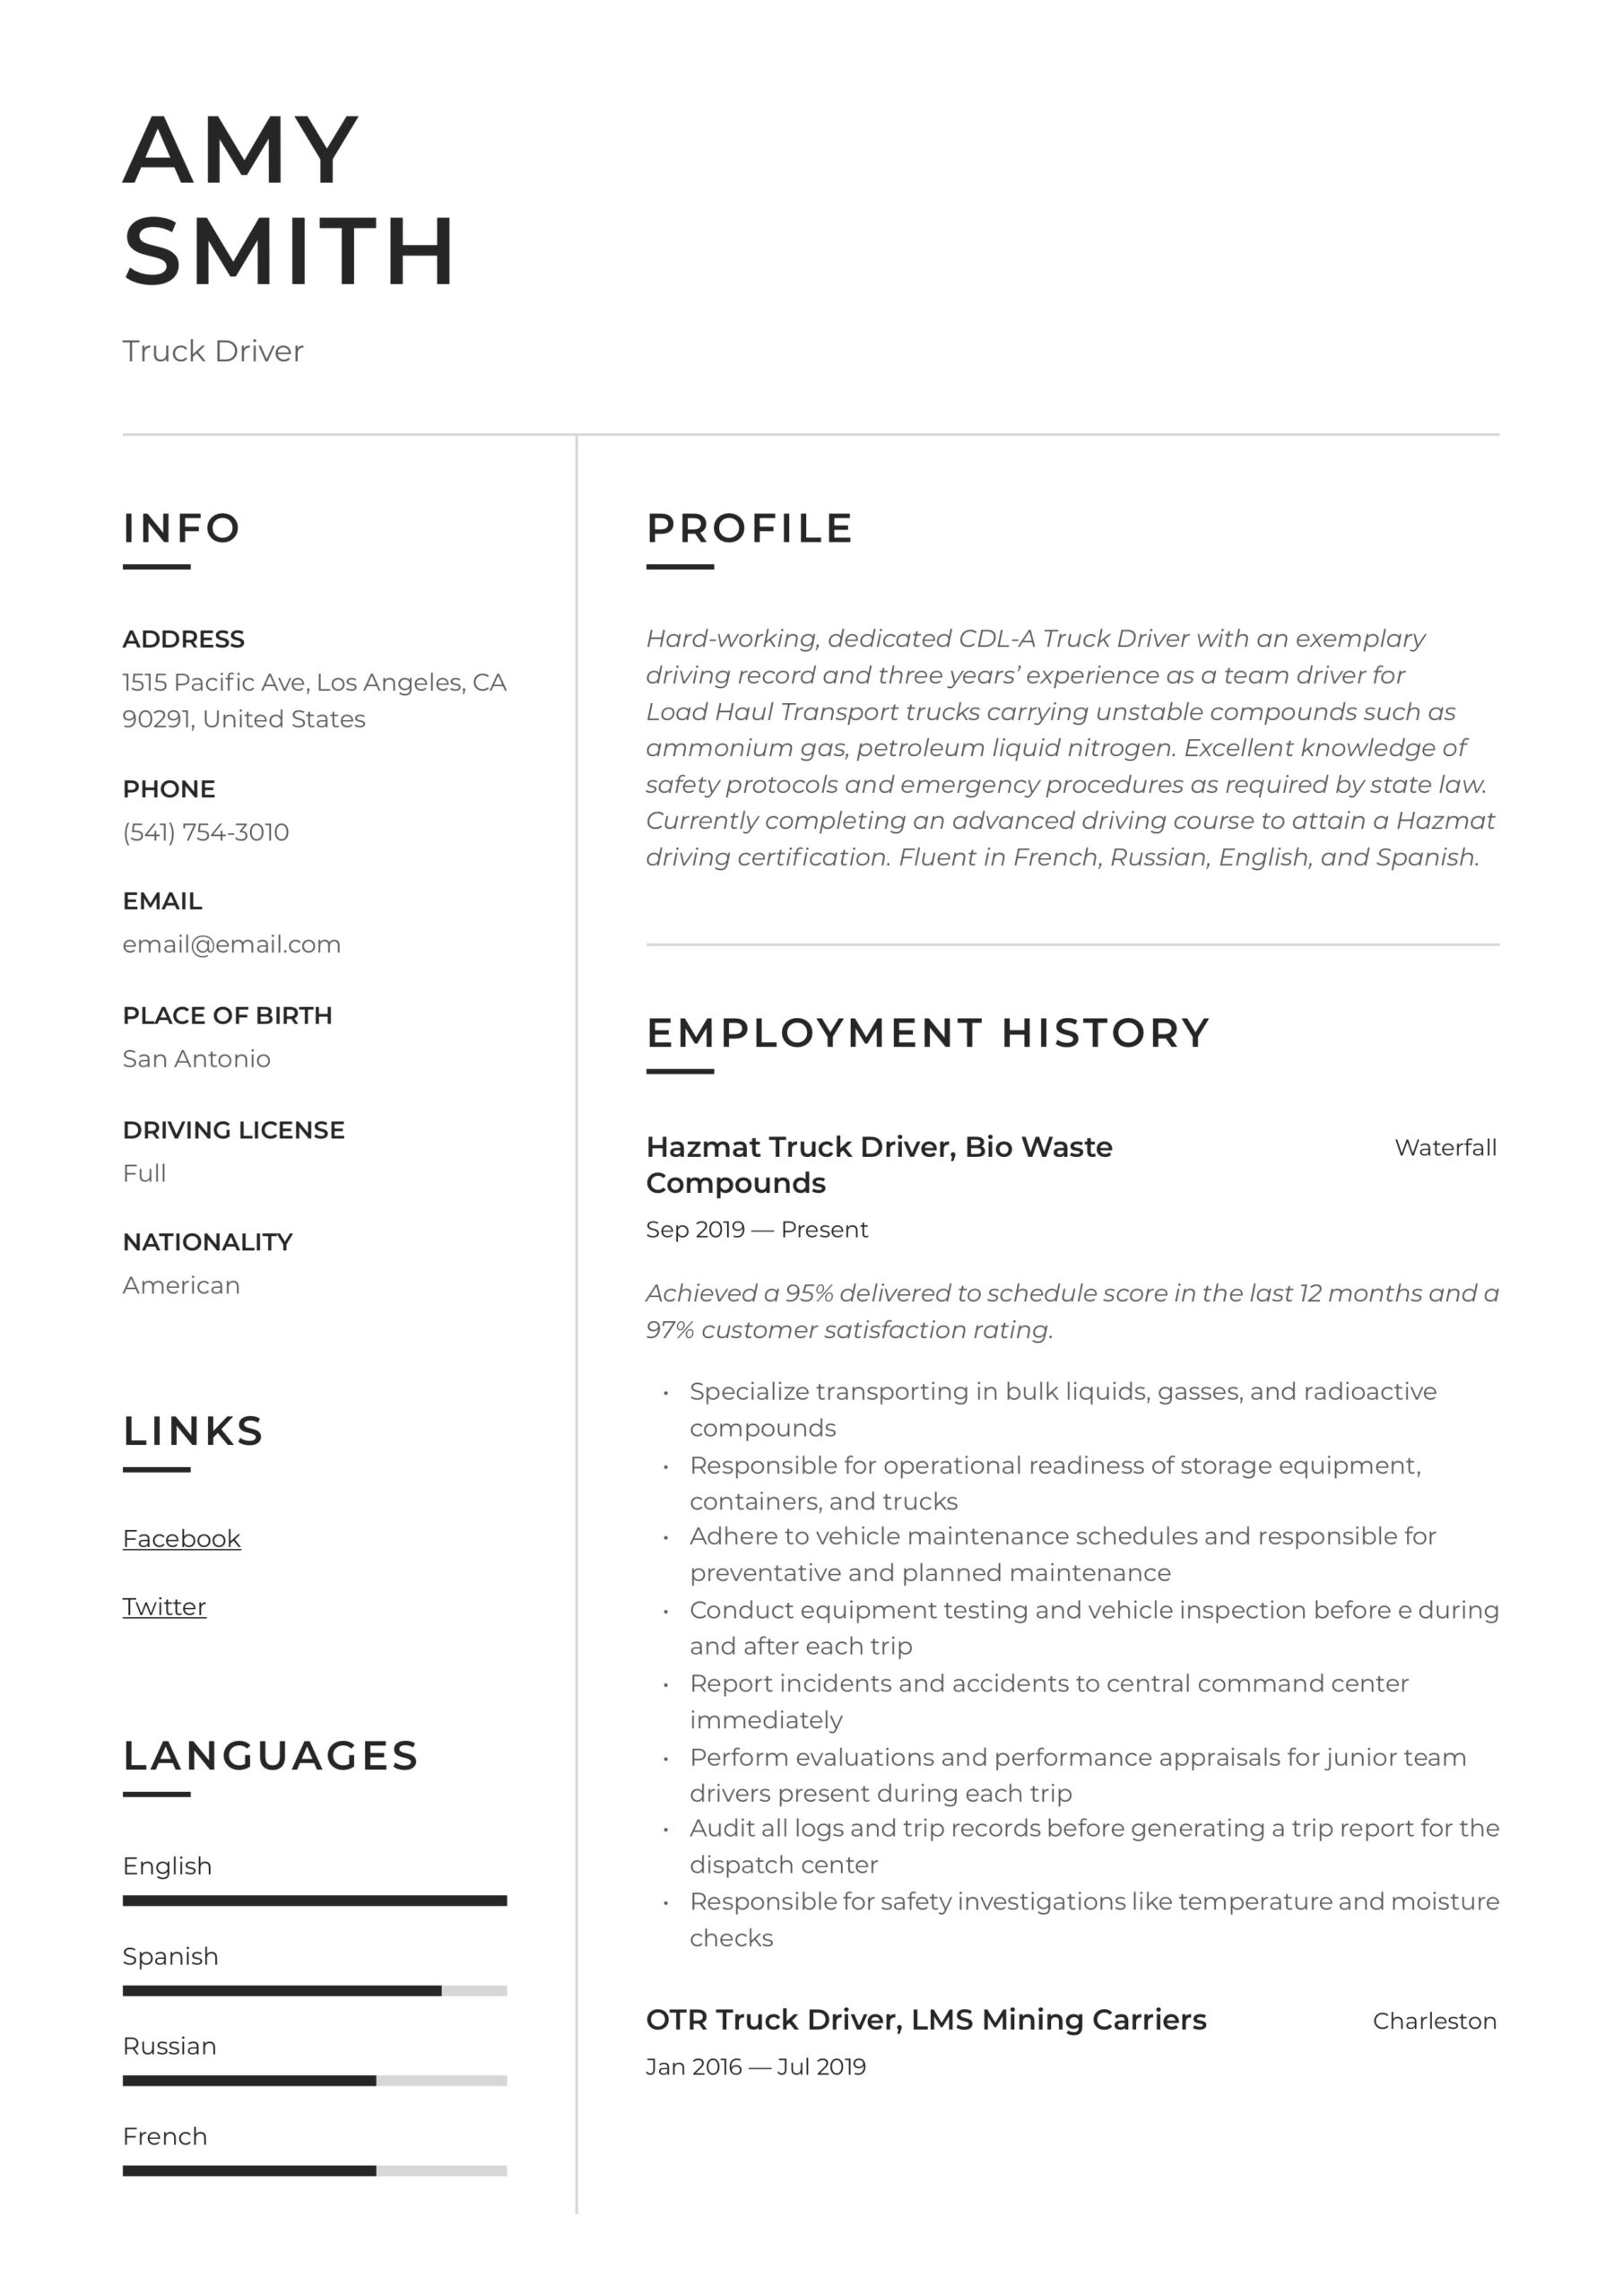 truck driver resume writing guide examples free sample dlsu template nvh engineer modern Resume Free Sample Truck Driver Resume